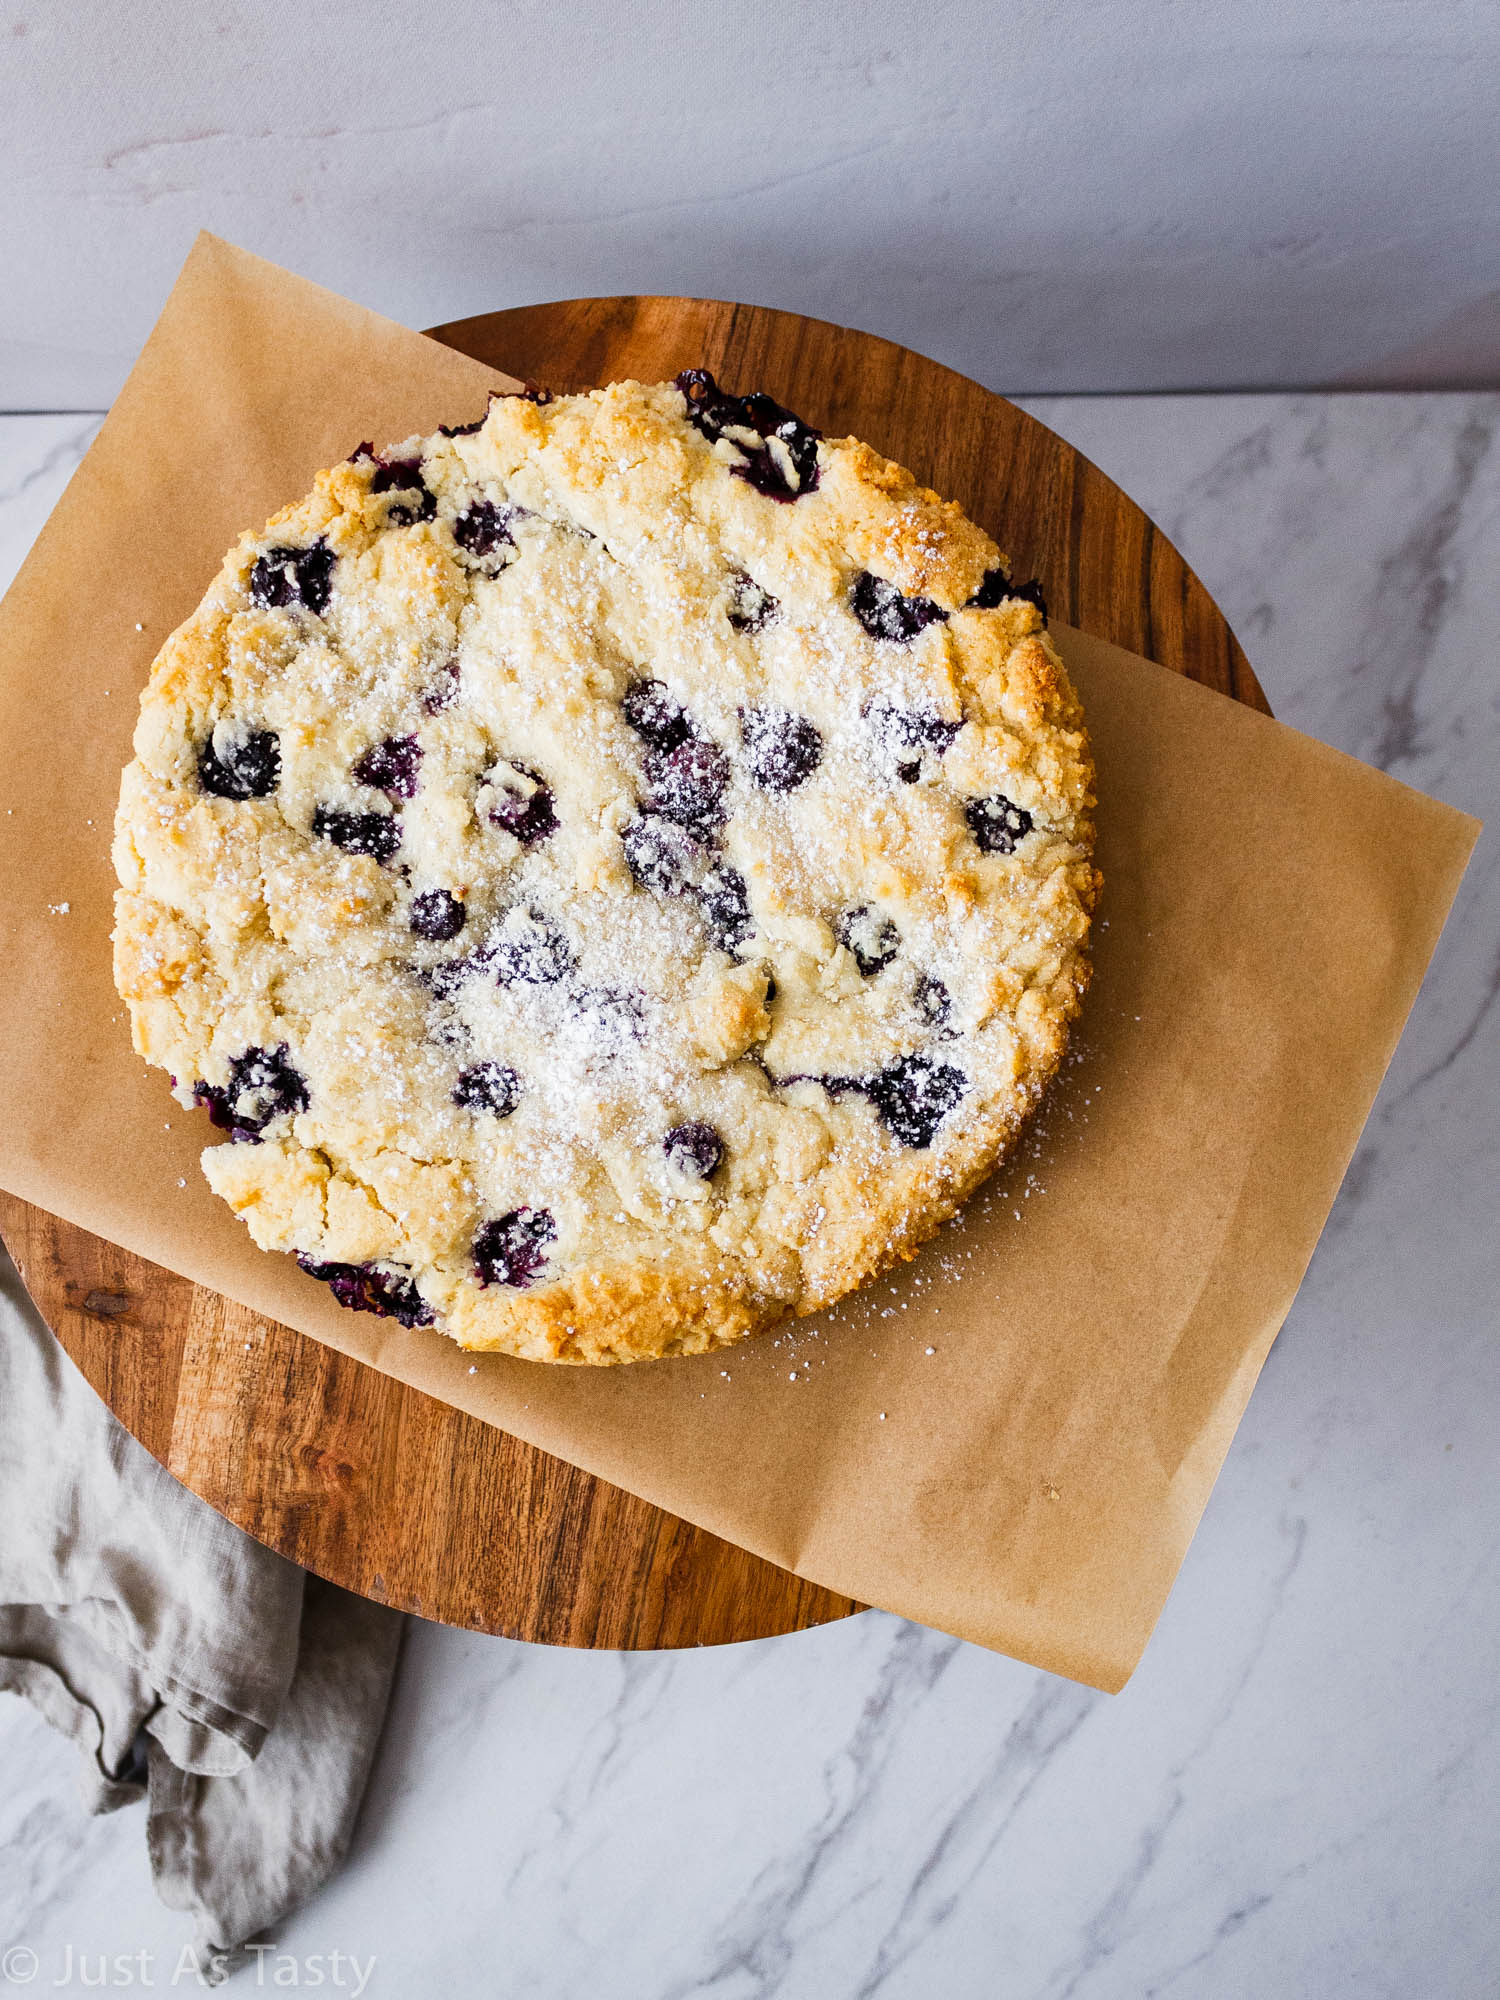 Round single layer blueberry cake on a cake stand.